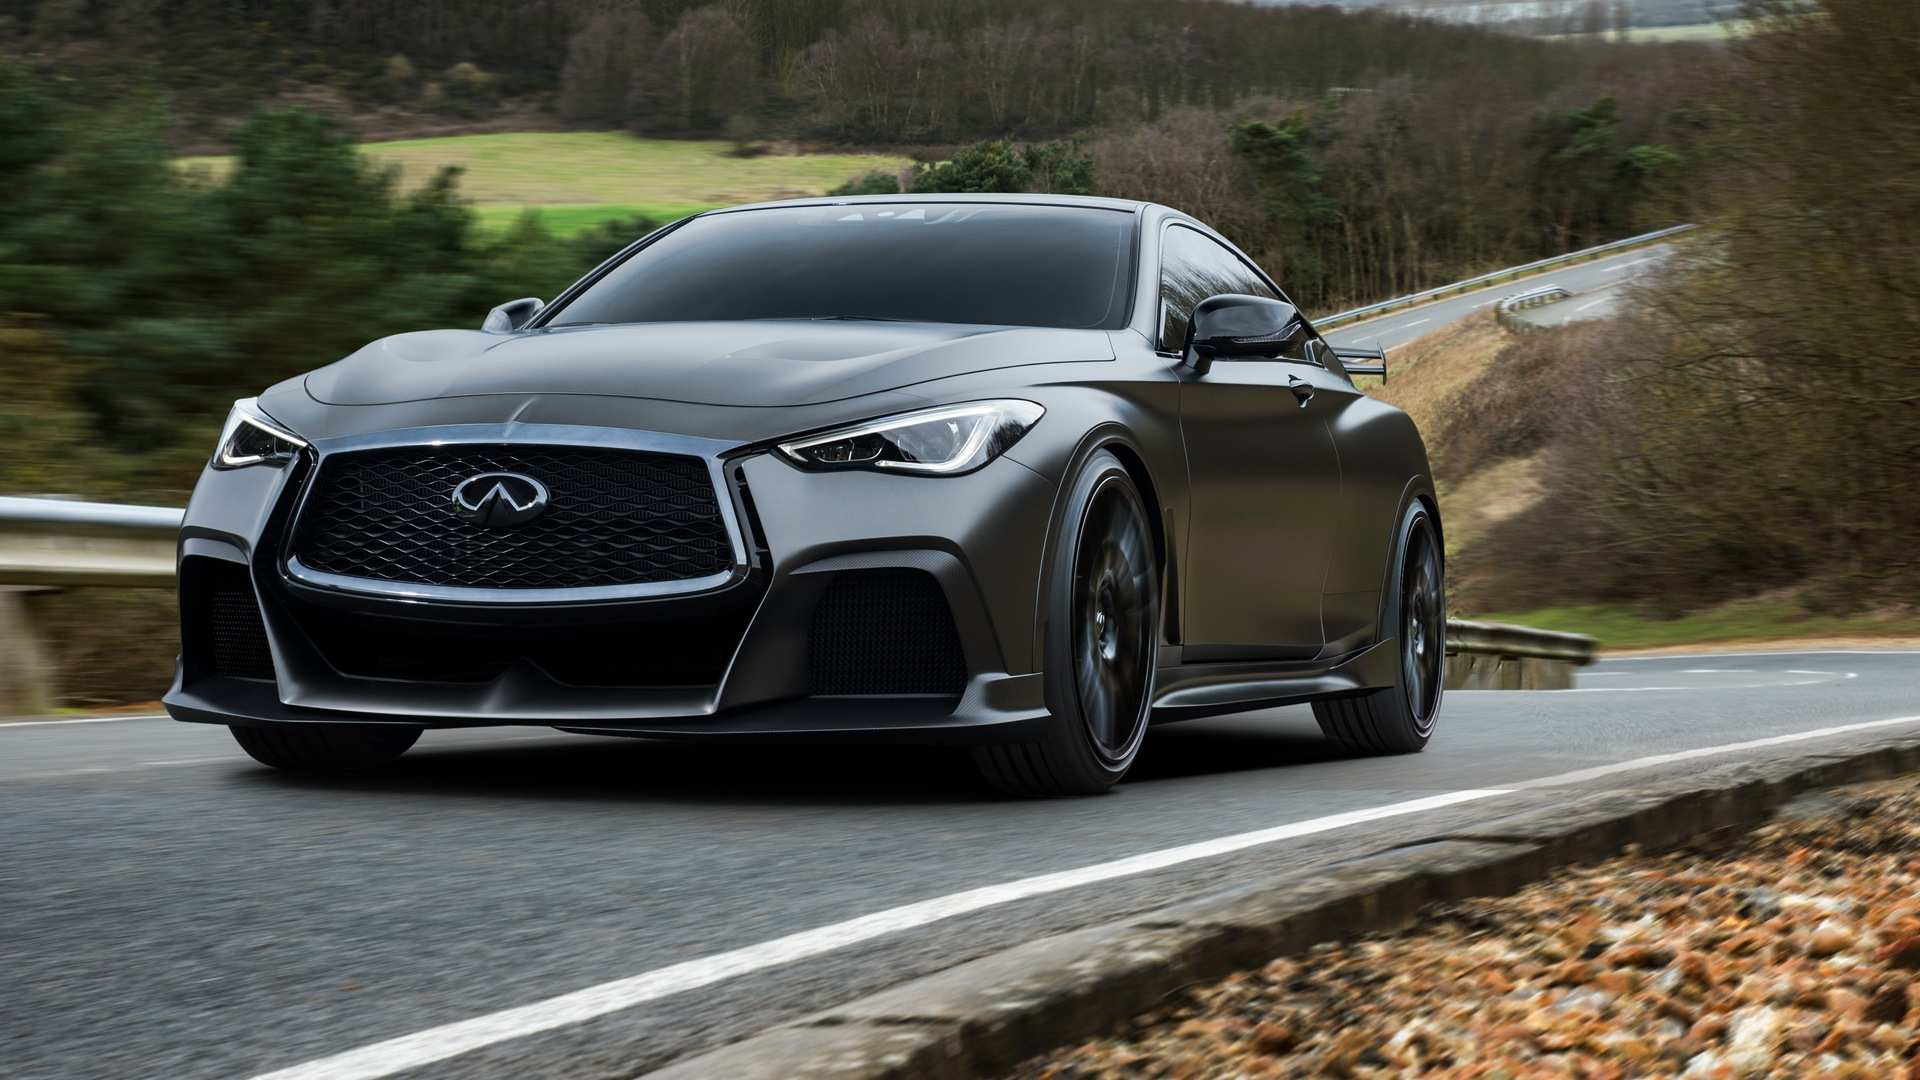 39 New Infiniti Coupe 2020 Prices for Infiniti Coupe 2020